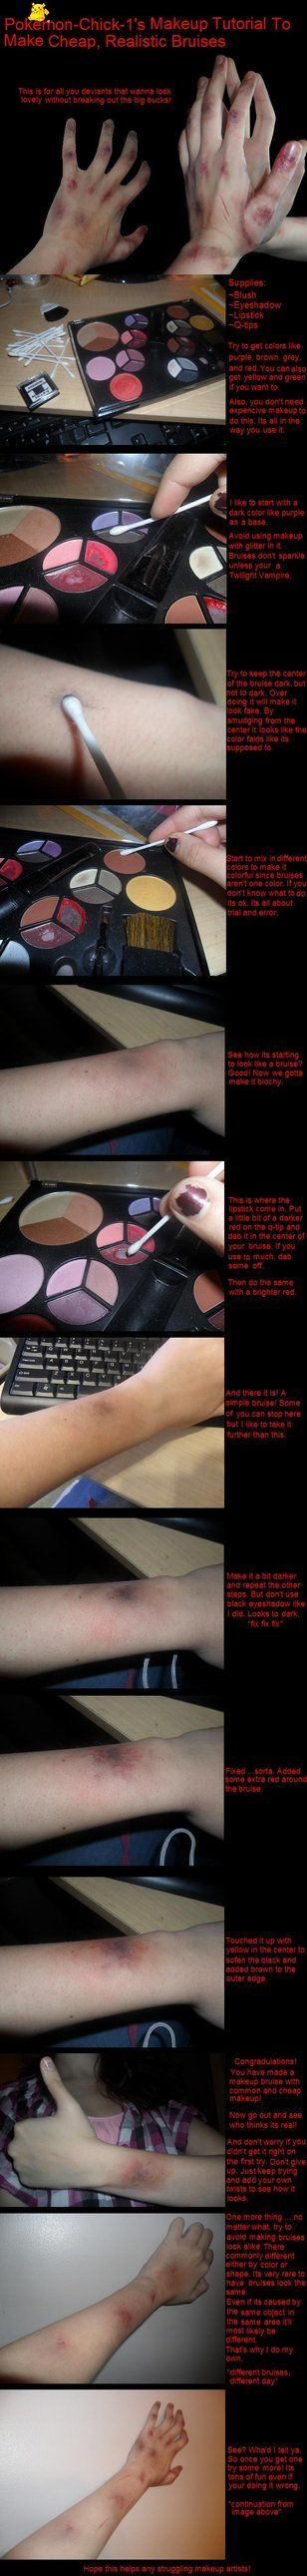 Just a tutorial for people that wanted to know how I make my makeup bruises. Its really easy but its easier to show them than explain. Yeah I use normal makeup. This stuff gets used for special eff... - COSPLAY IS BAEEE!!! Tap the pin now to grab yourself some BAE Cosplay leggings and shirts! From super hero fitness leggings, super hero fitness shirts, and so much more that wil make you say YASSS!!!